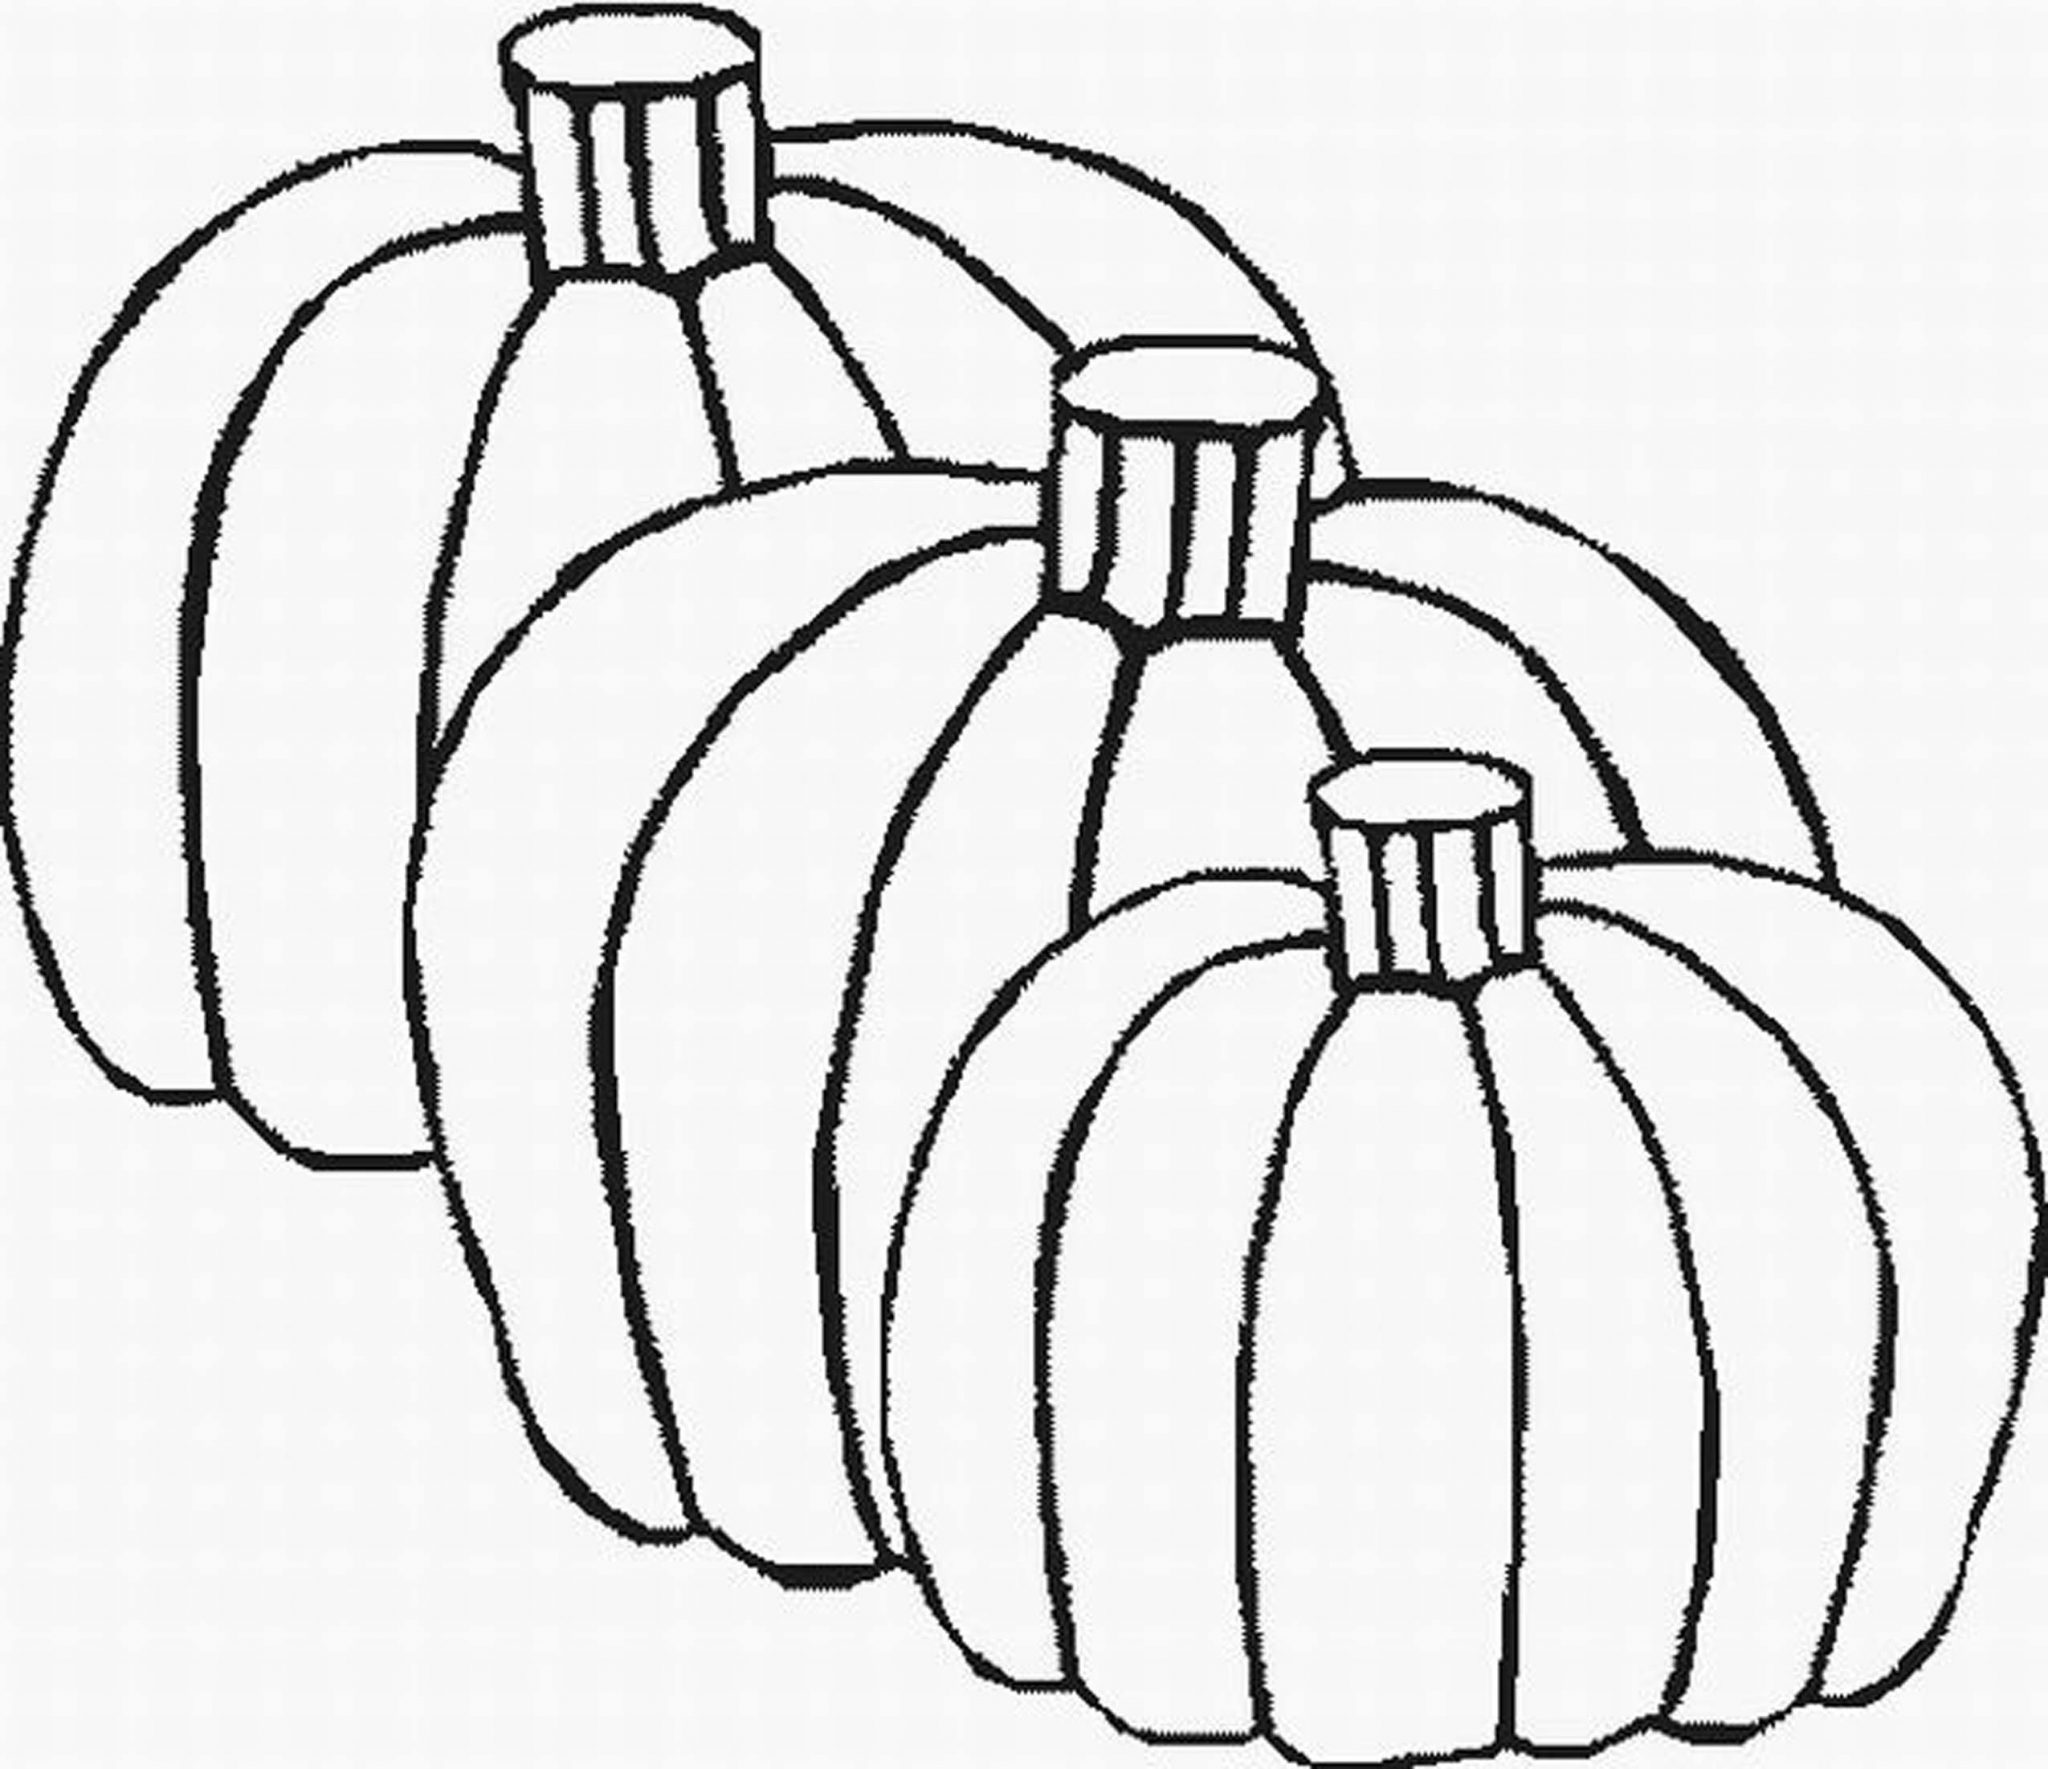 free pumpkin coloring pages printable halloween pumpkin coloring pages scary halloween pumpkin pumpkin printable free coloring pages